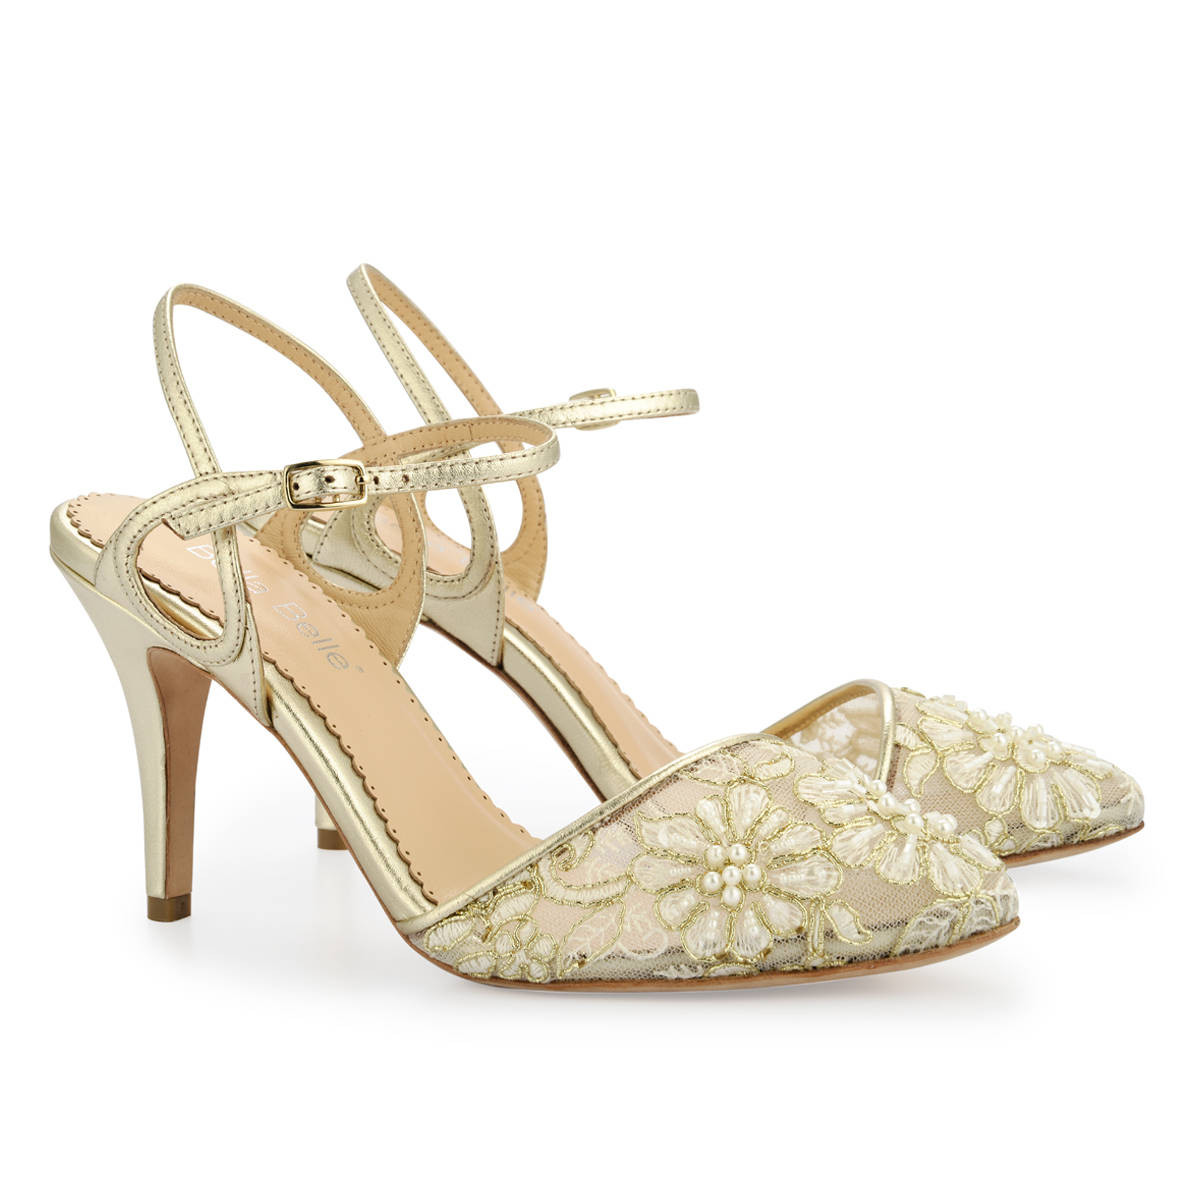 27 Amazing High Heel Shoe Vase 2021 free download high heel shoe vase of gold pearl embroidered lace kitten heel with ankle straps etsy inside image 0